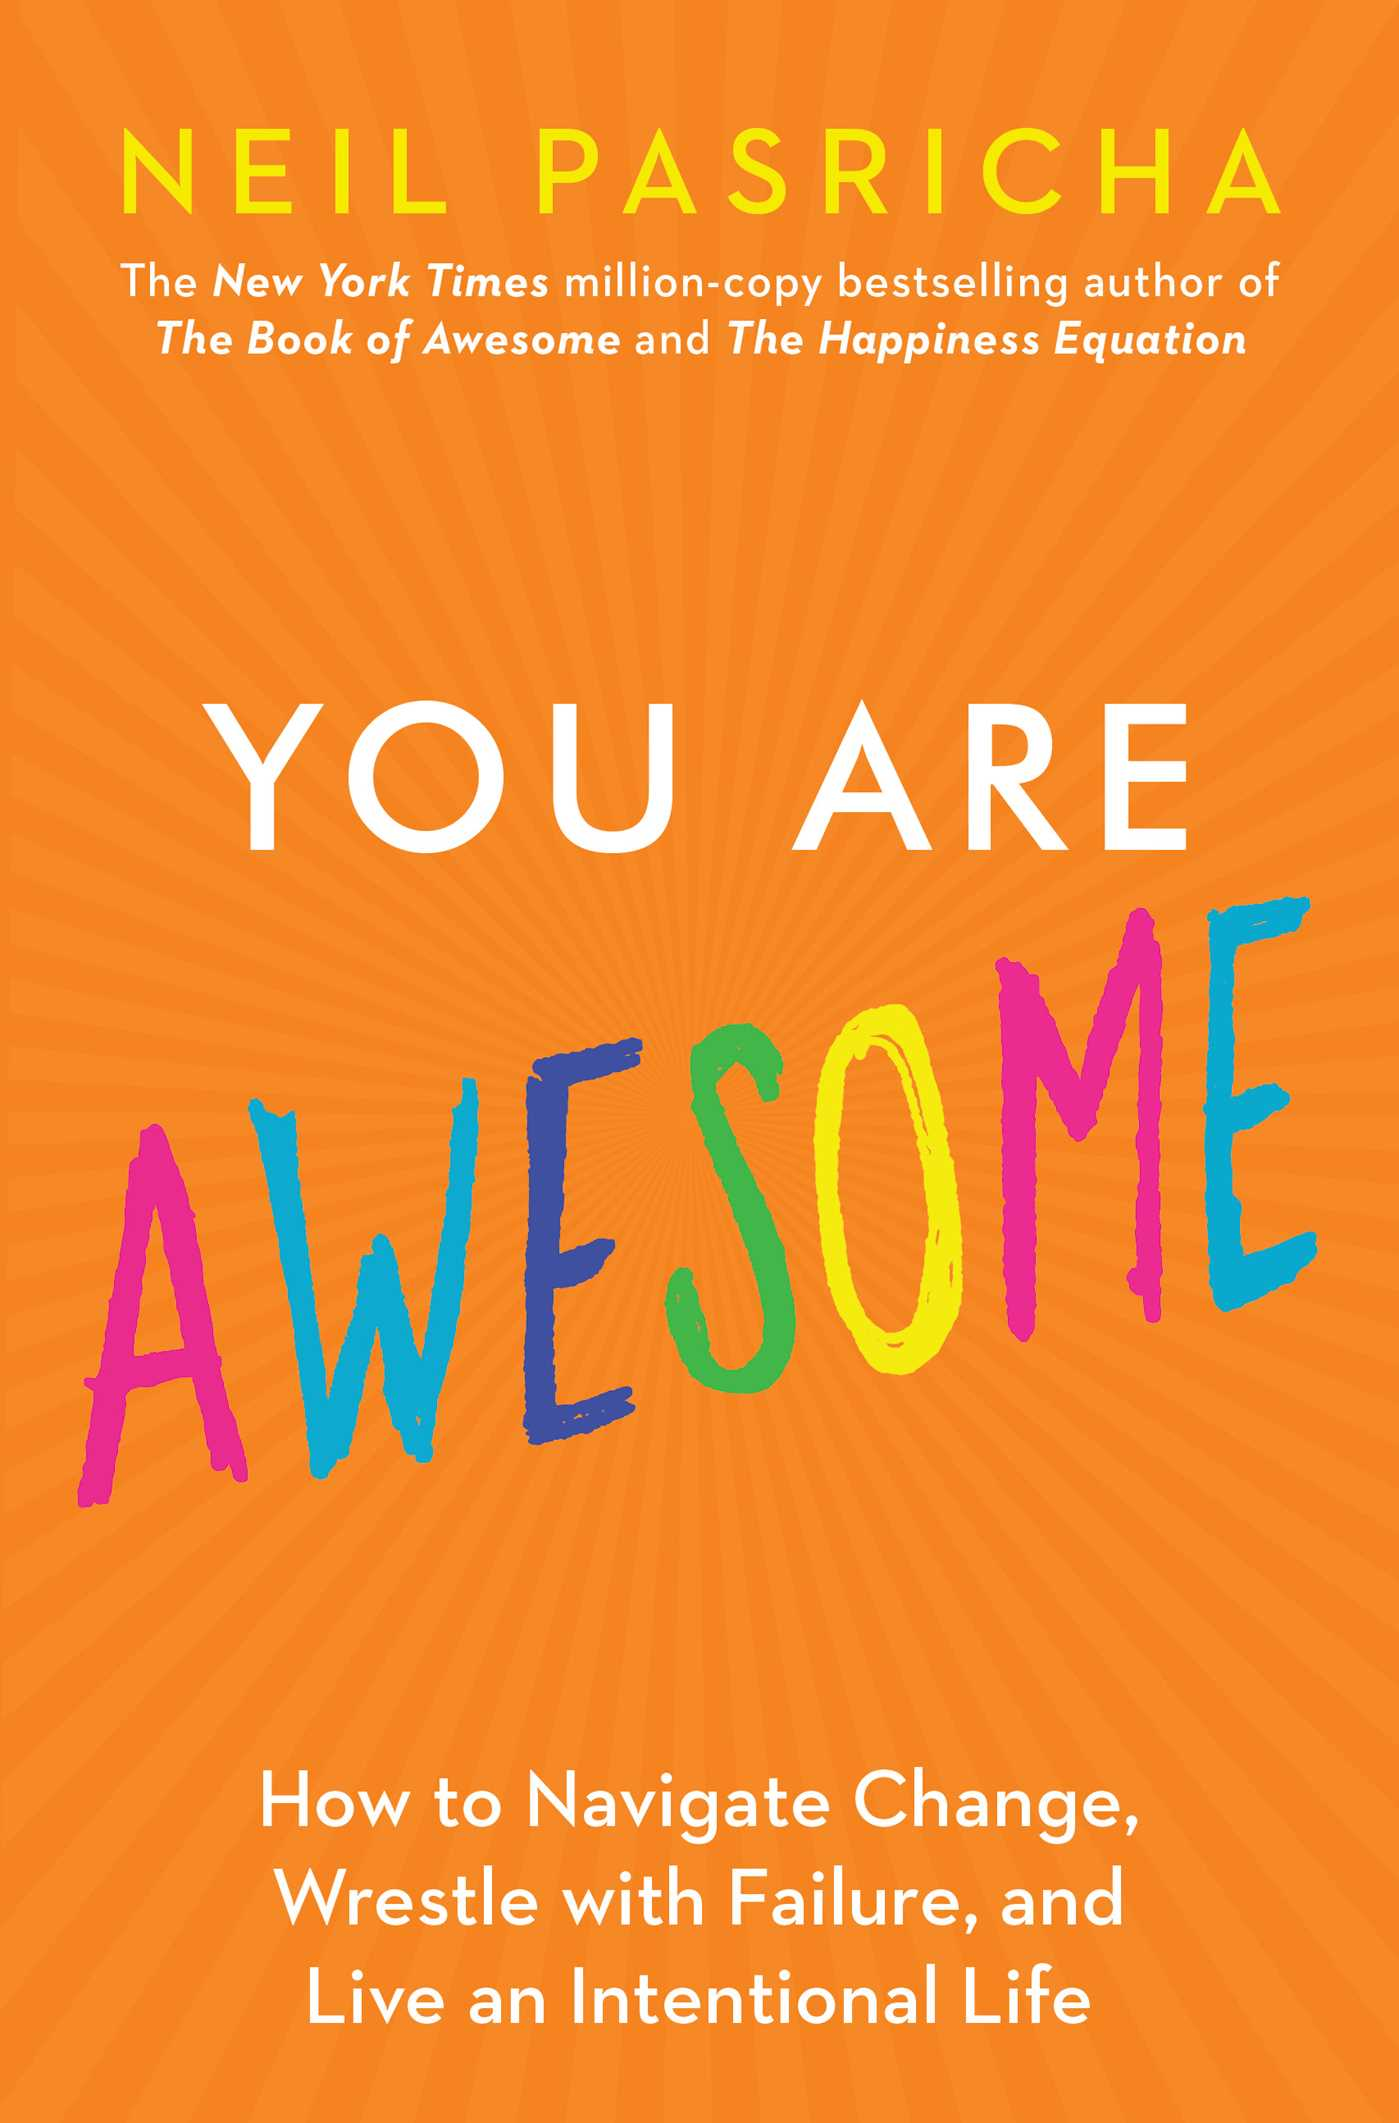 You Are Awesome: How to Navigate Change, Wrestle with Failure, and Live an Intentional Life